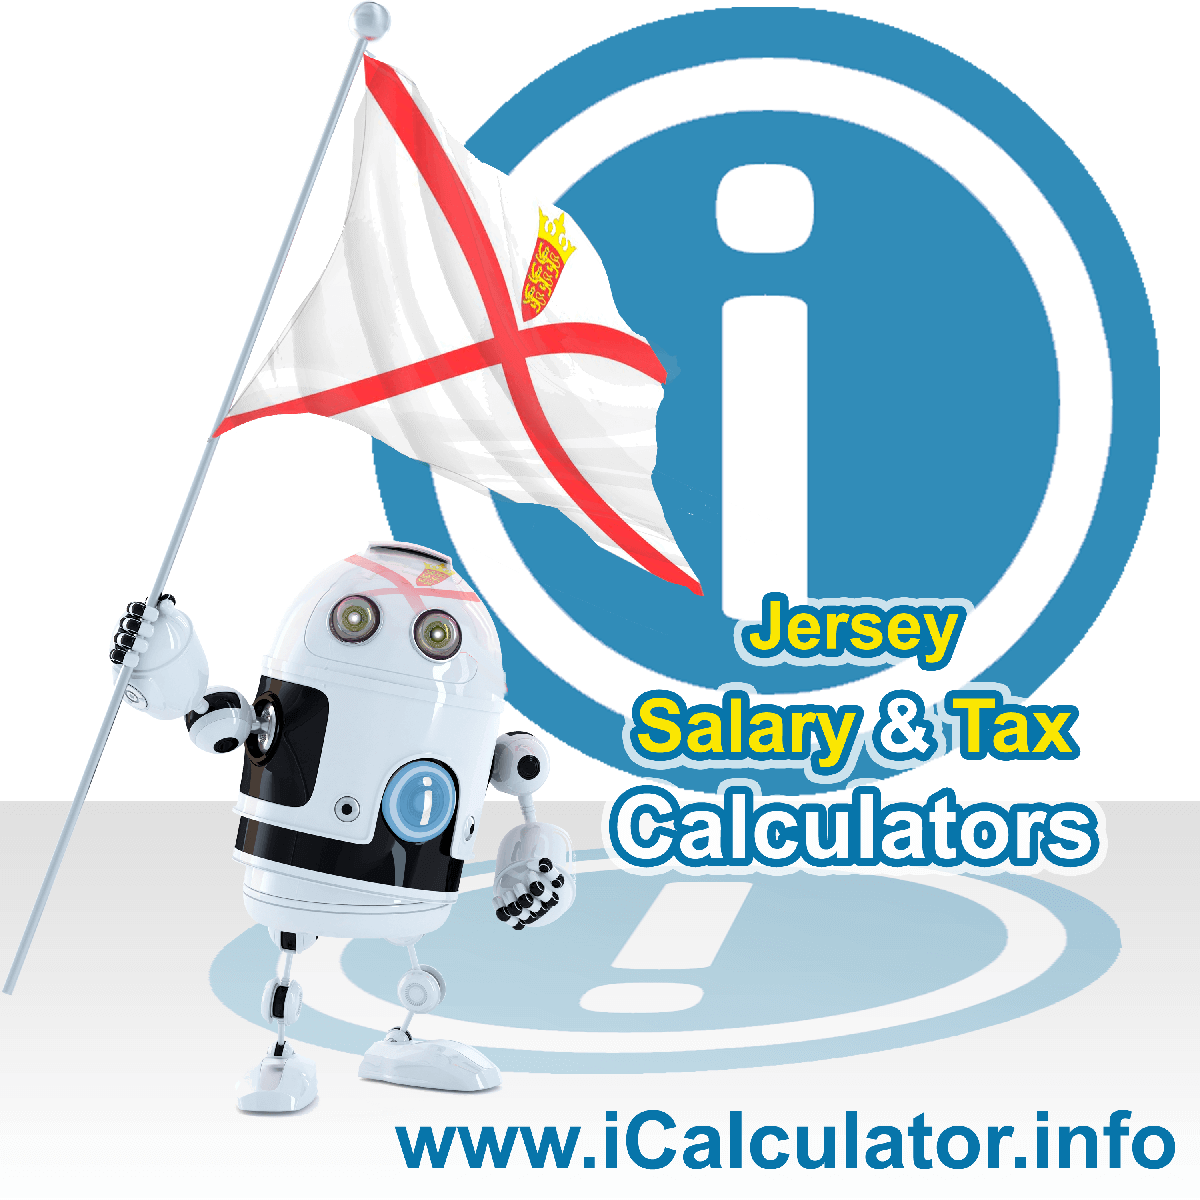 Jersey Wage Calculator. This image shows the Jersey flag and information relating to the tax formula for the Jersey Tax Calculator